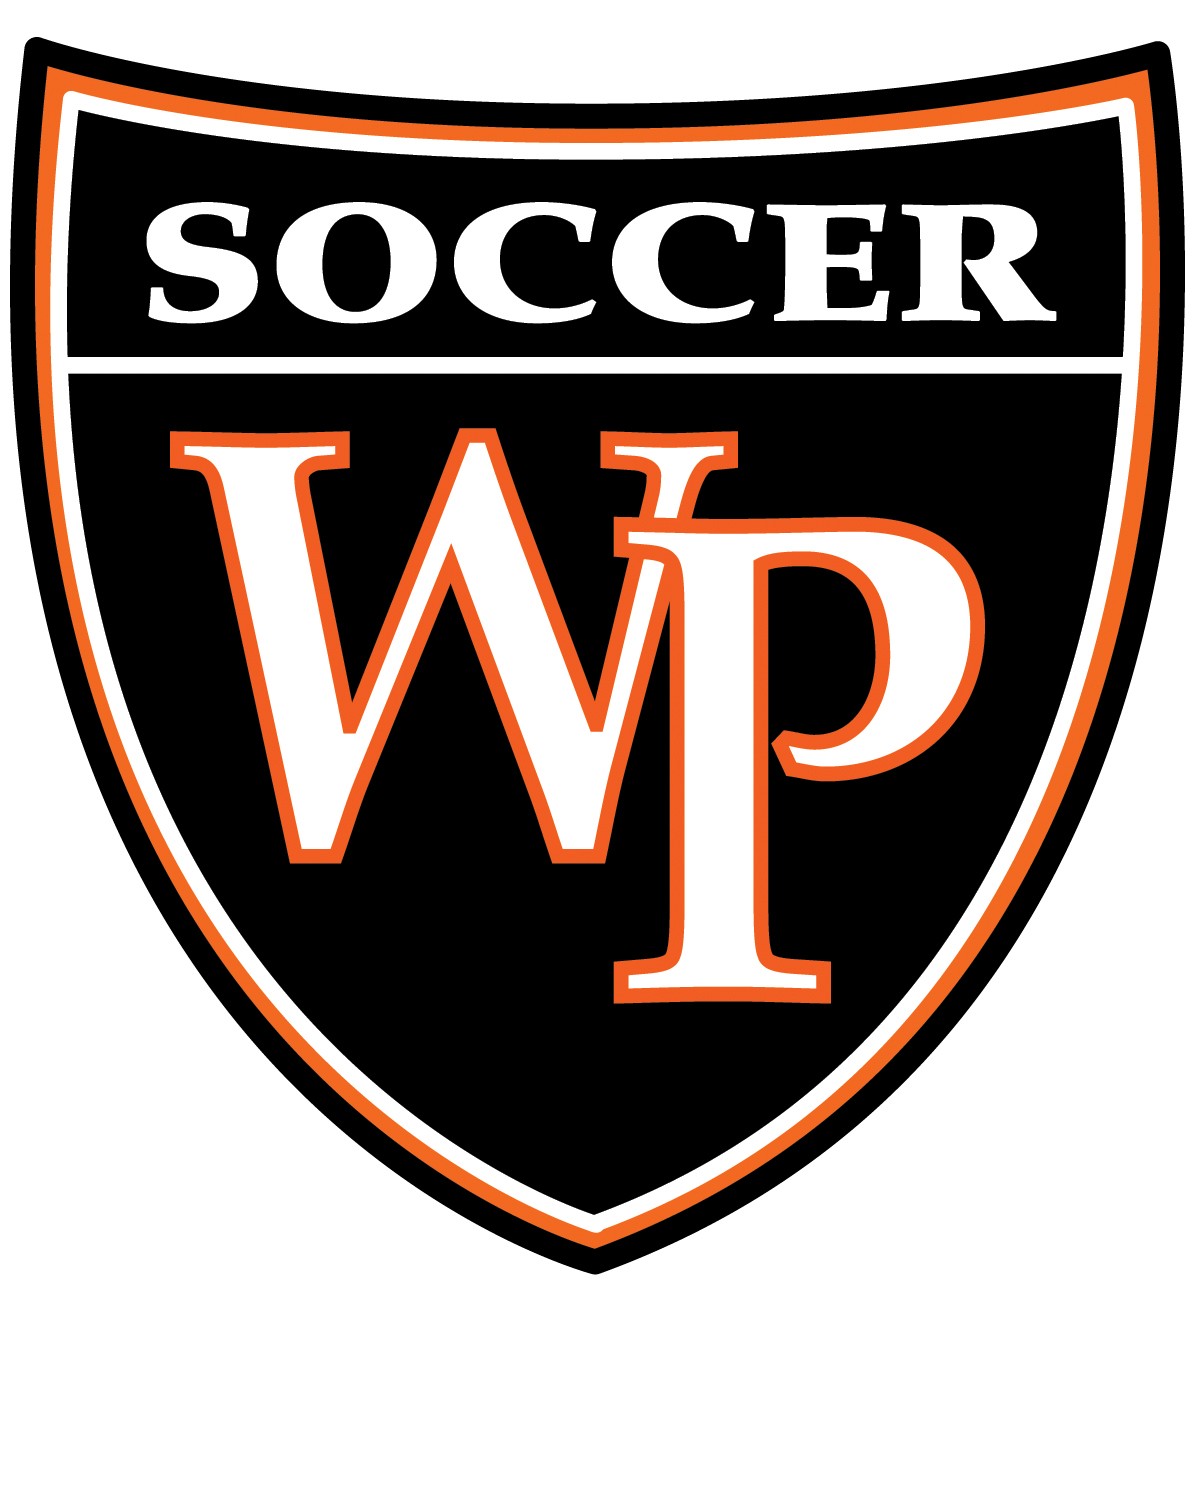 William Paterson